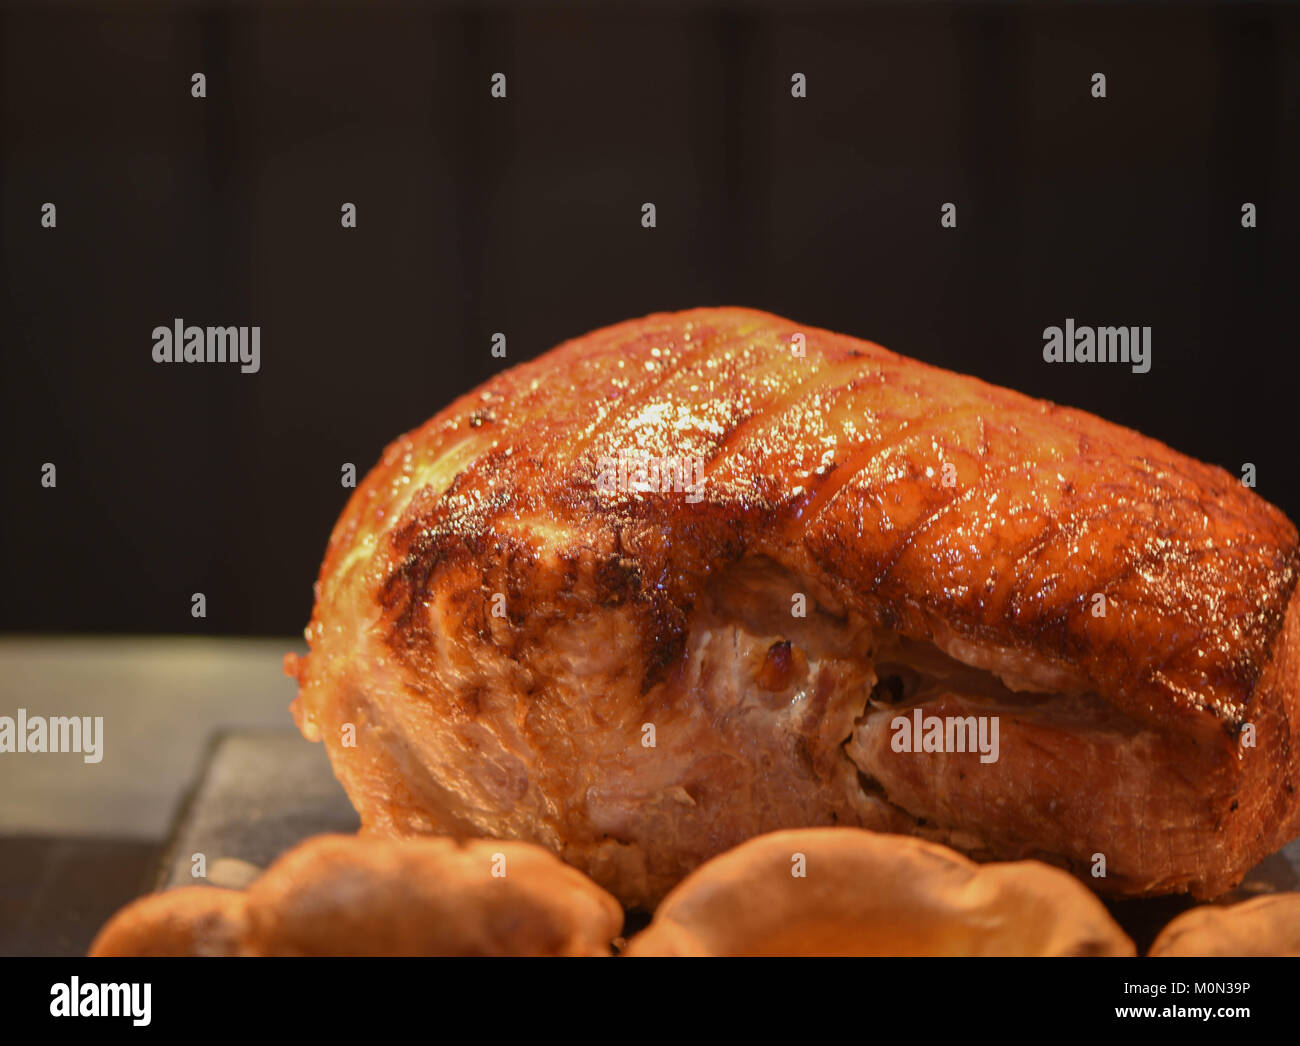 close up food photography image of a cooked and resting roast dinner joint of meat of a gammon or pork with a dark - Stock Image